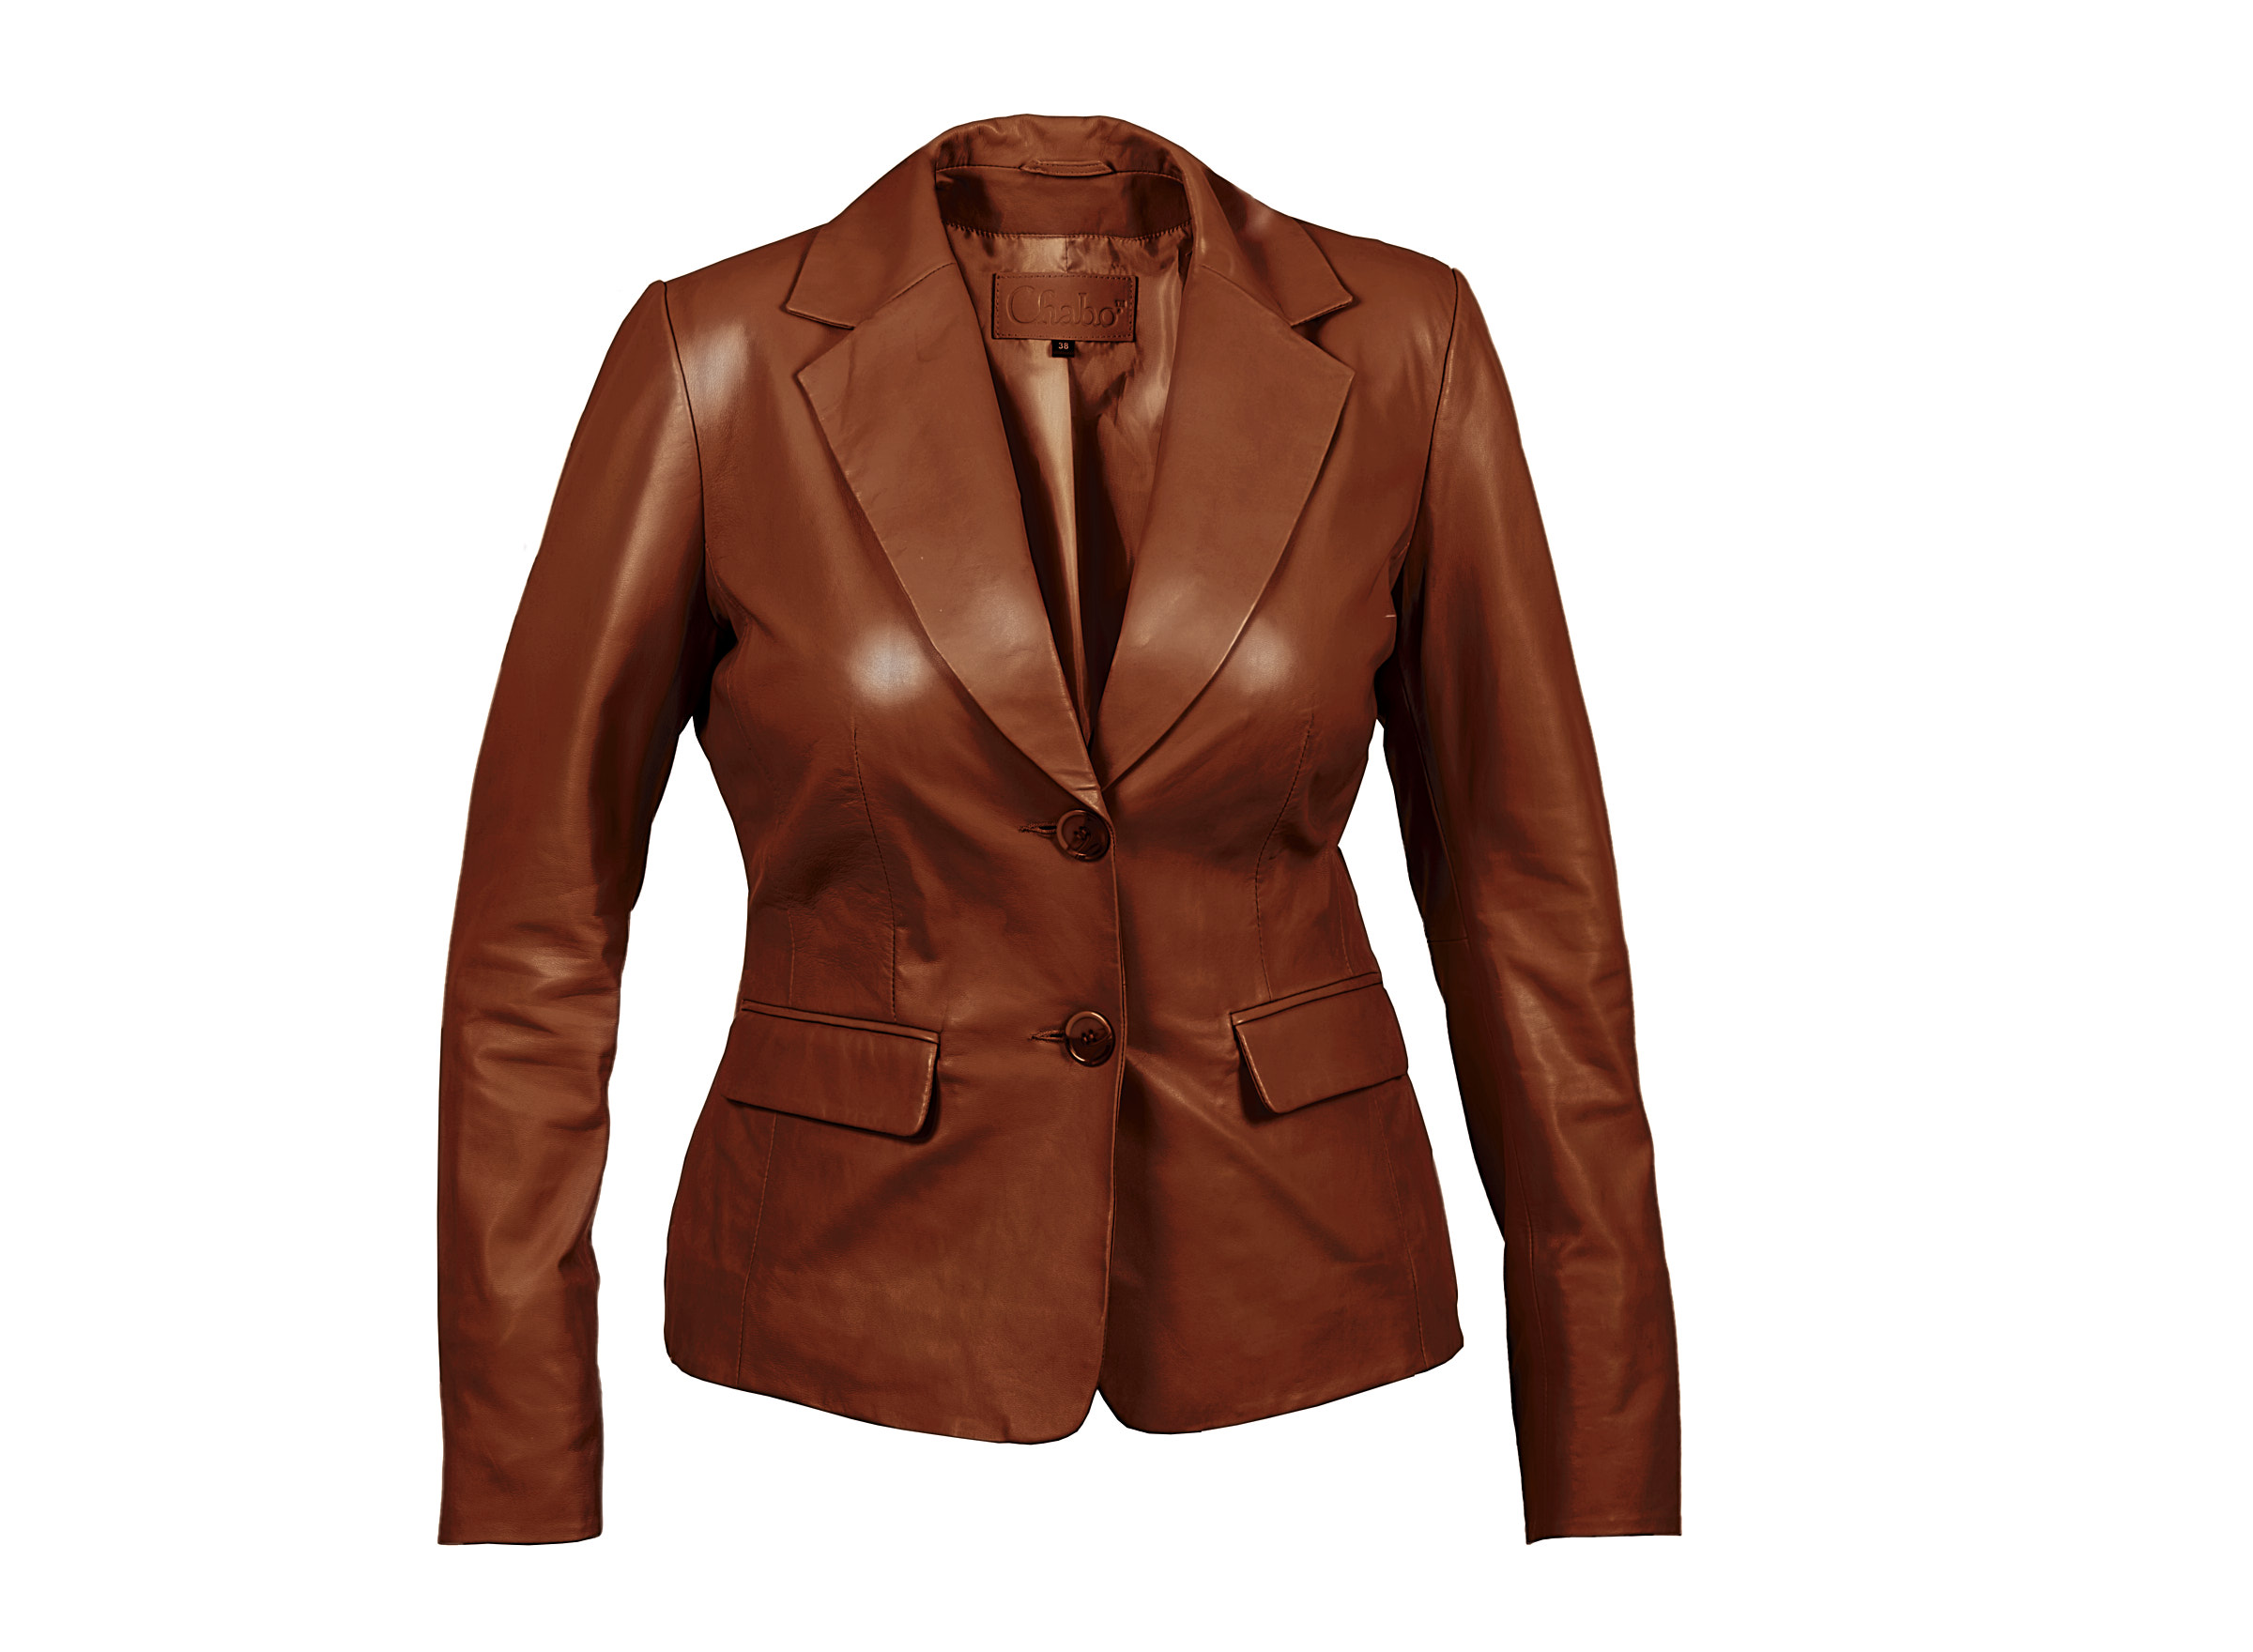 Chabo Bags - Leather Jacket Nina - Camel 40